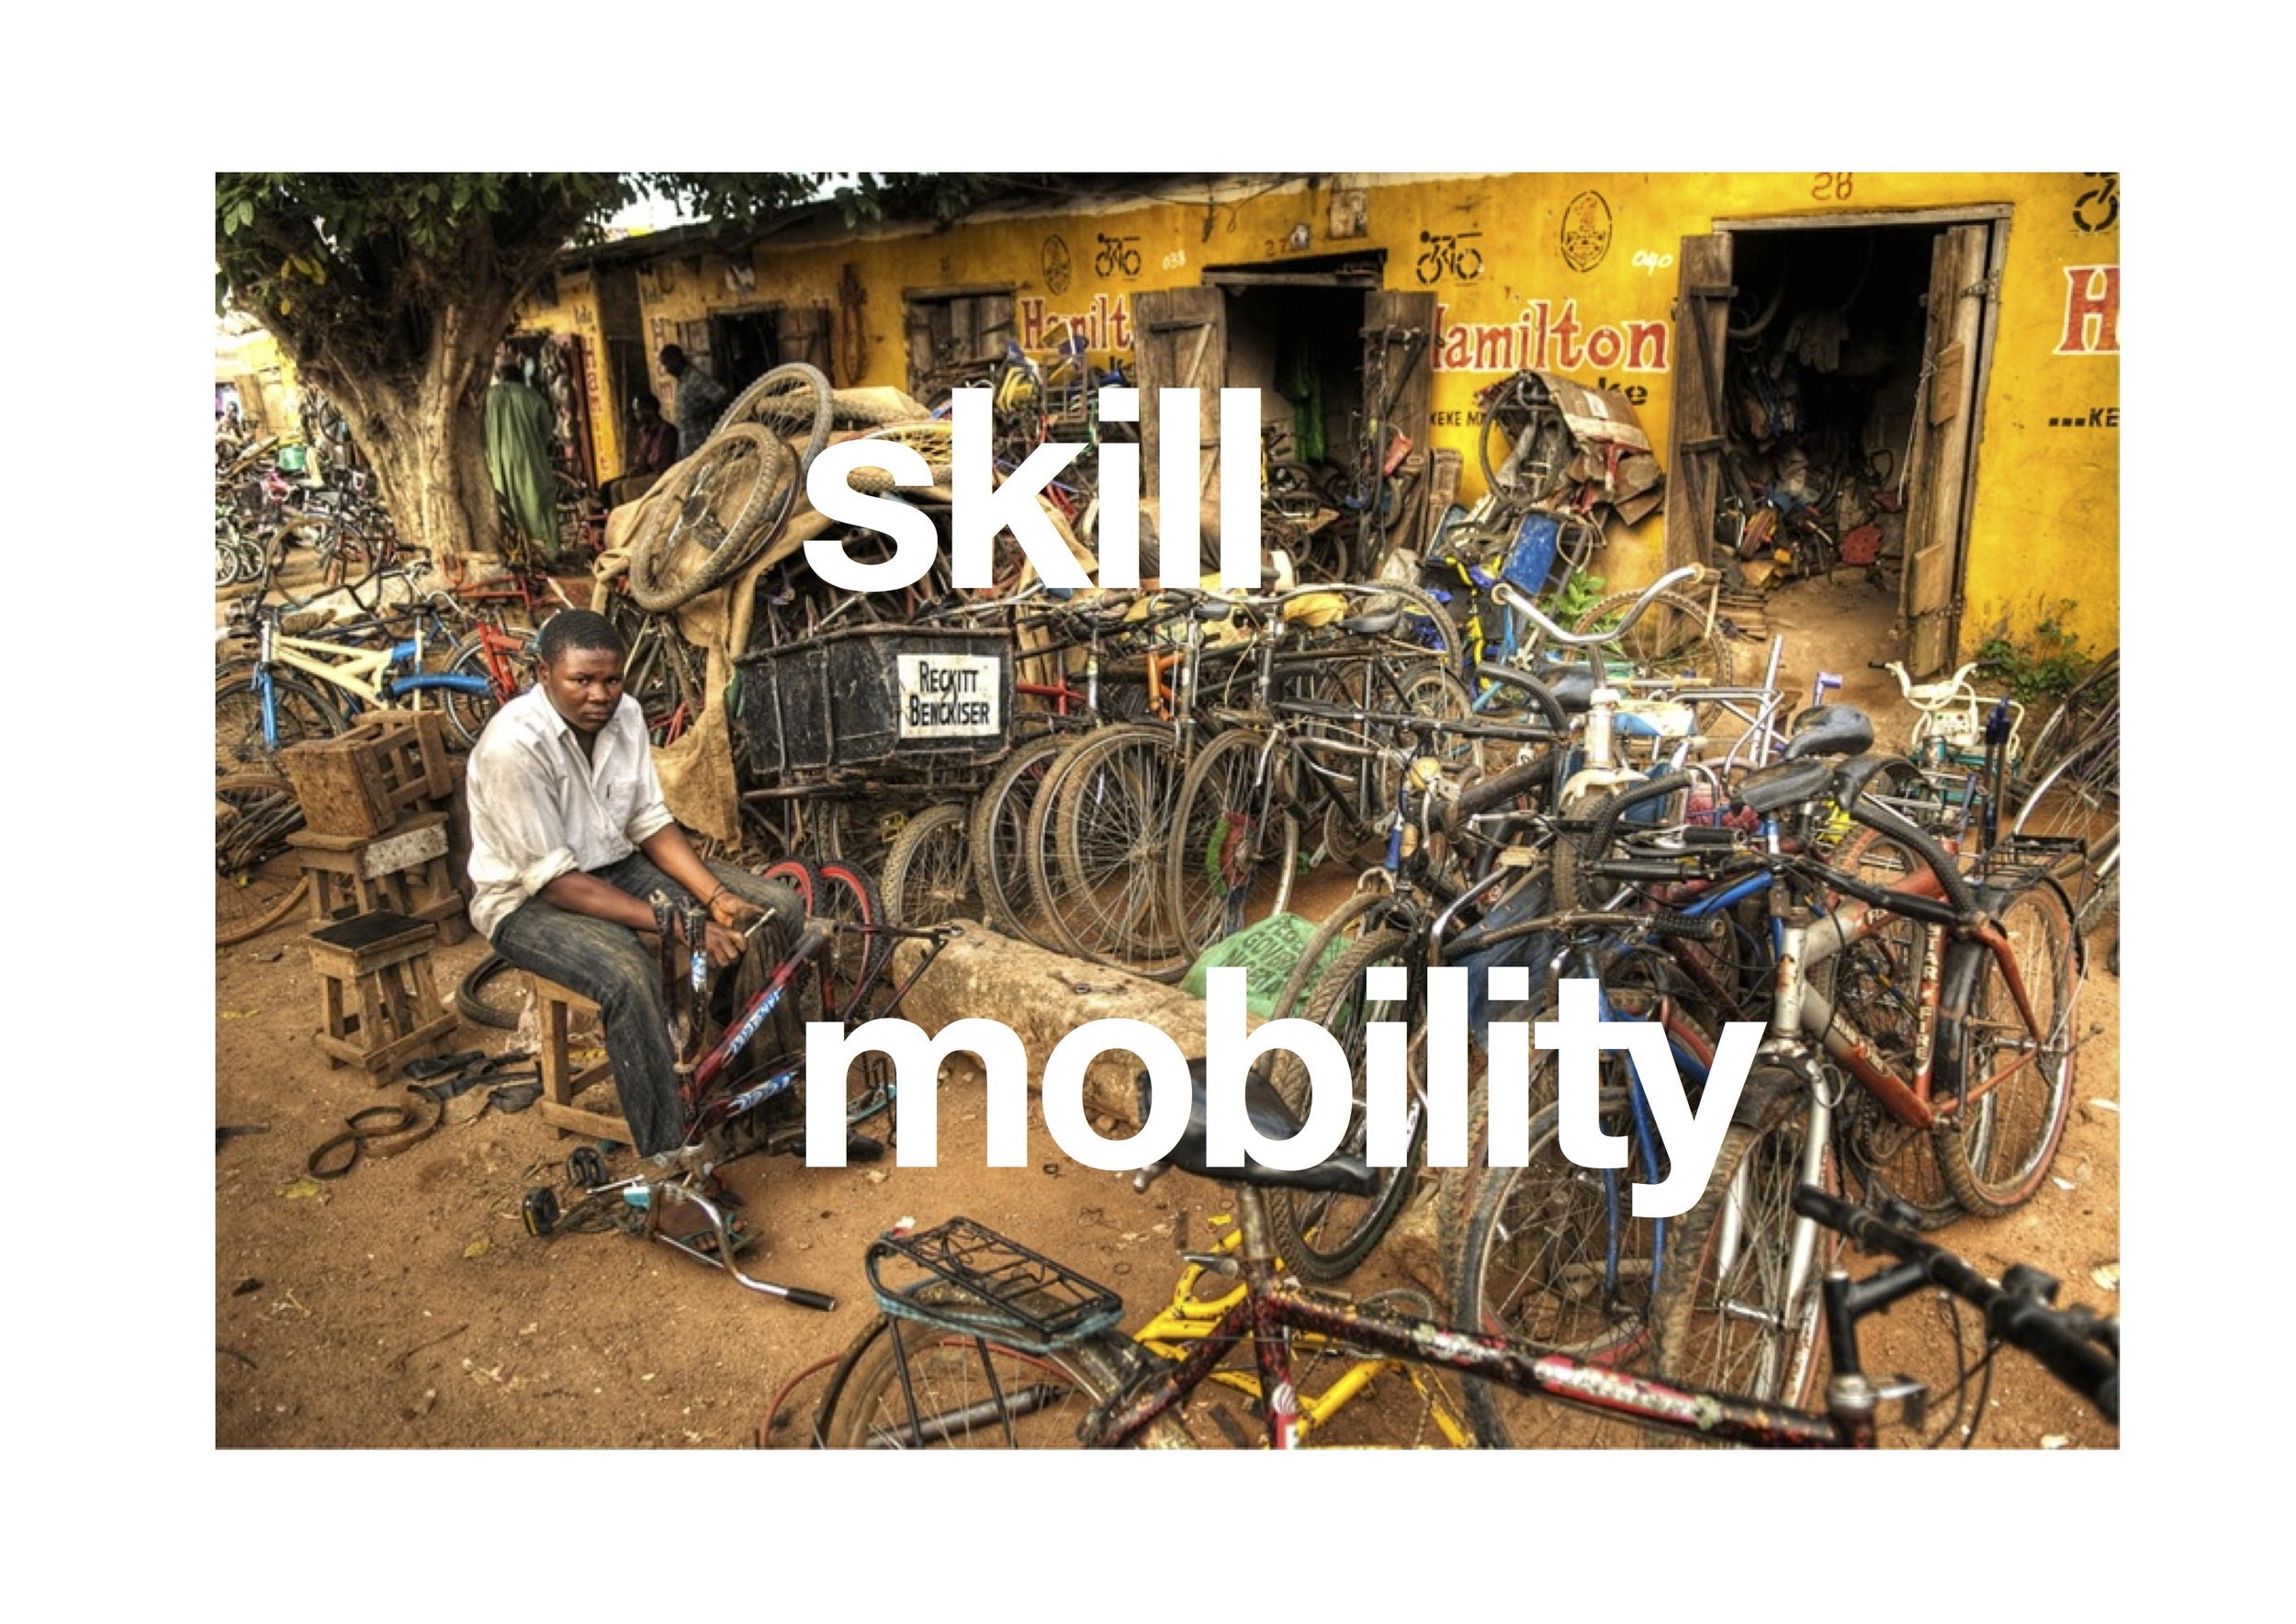 is this about bikes and money or about skills or mobility?